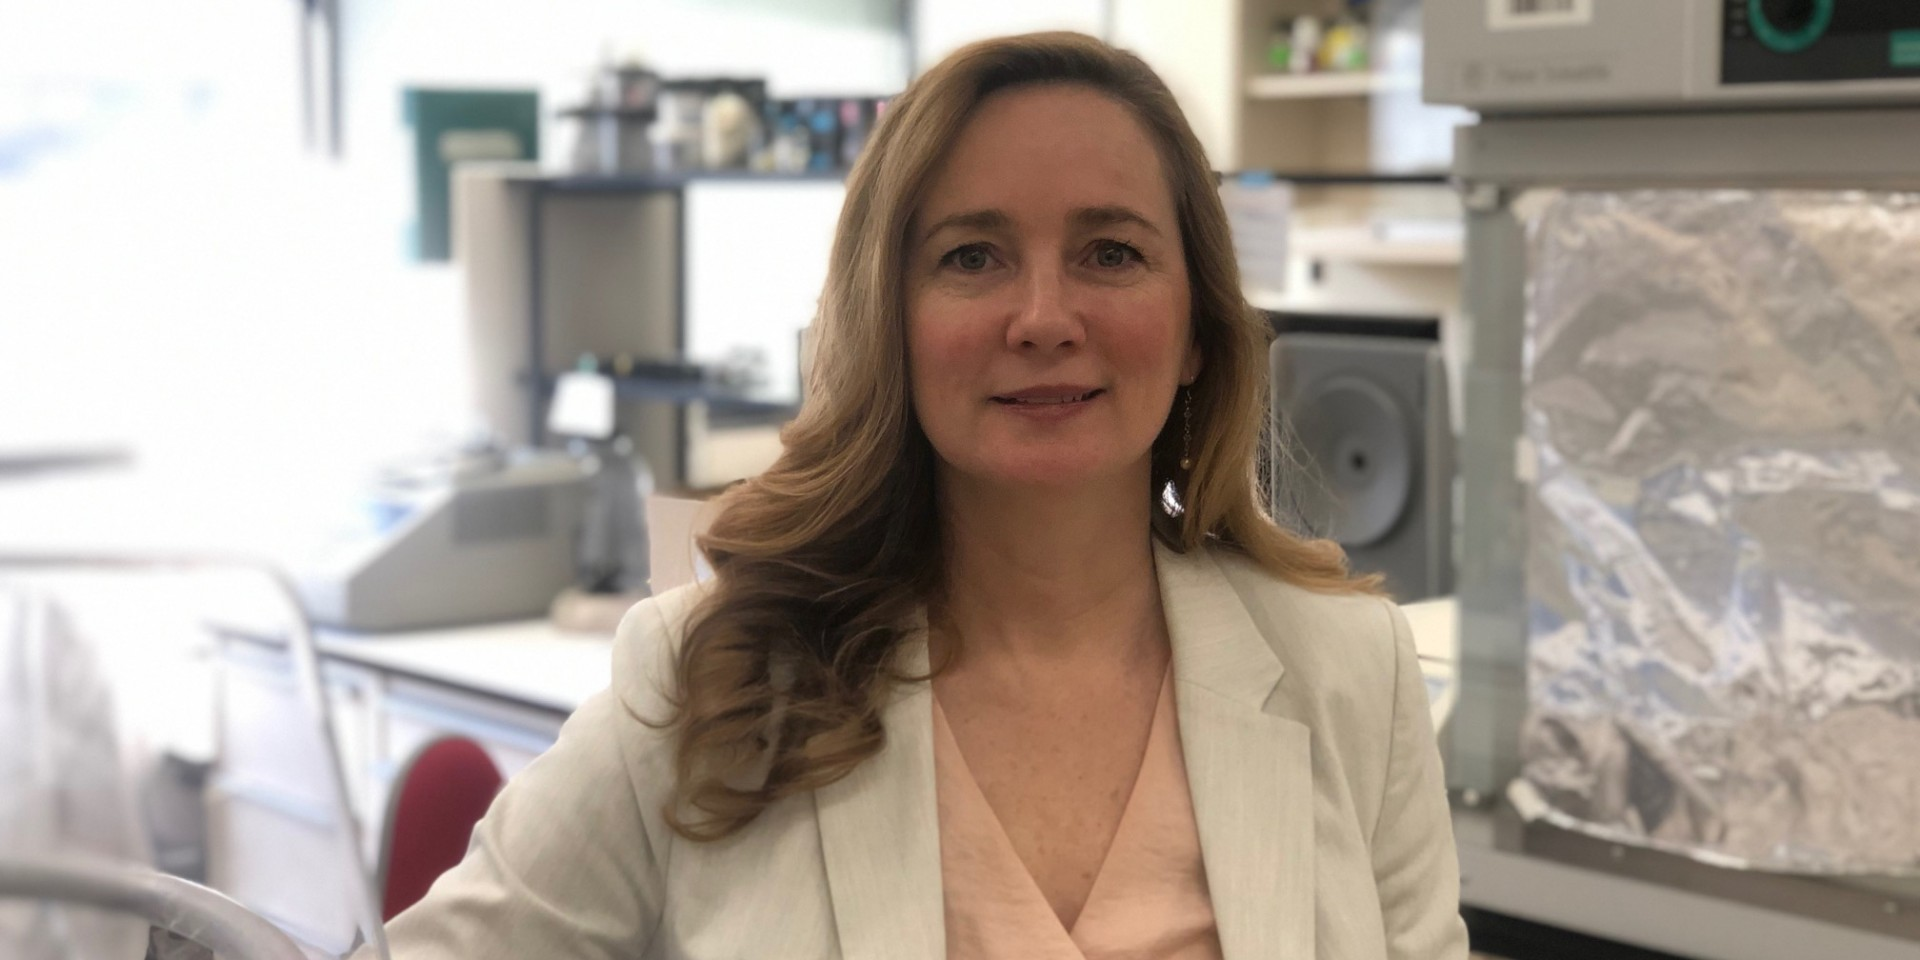 Biochemist Joanne Lemieux is working with U of A colleagues to find out whether a compound known to cure a deadly coronavirus-caused disease in cats might also work against COVID-19 in humans. (Photo: Supplied)